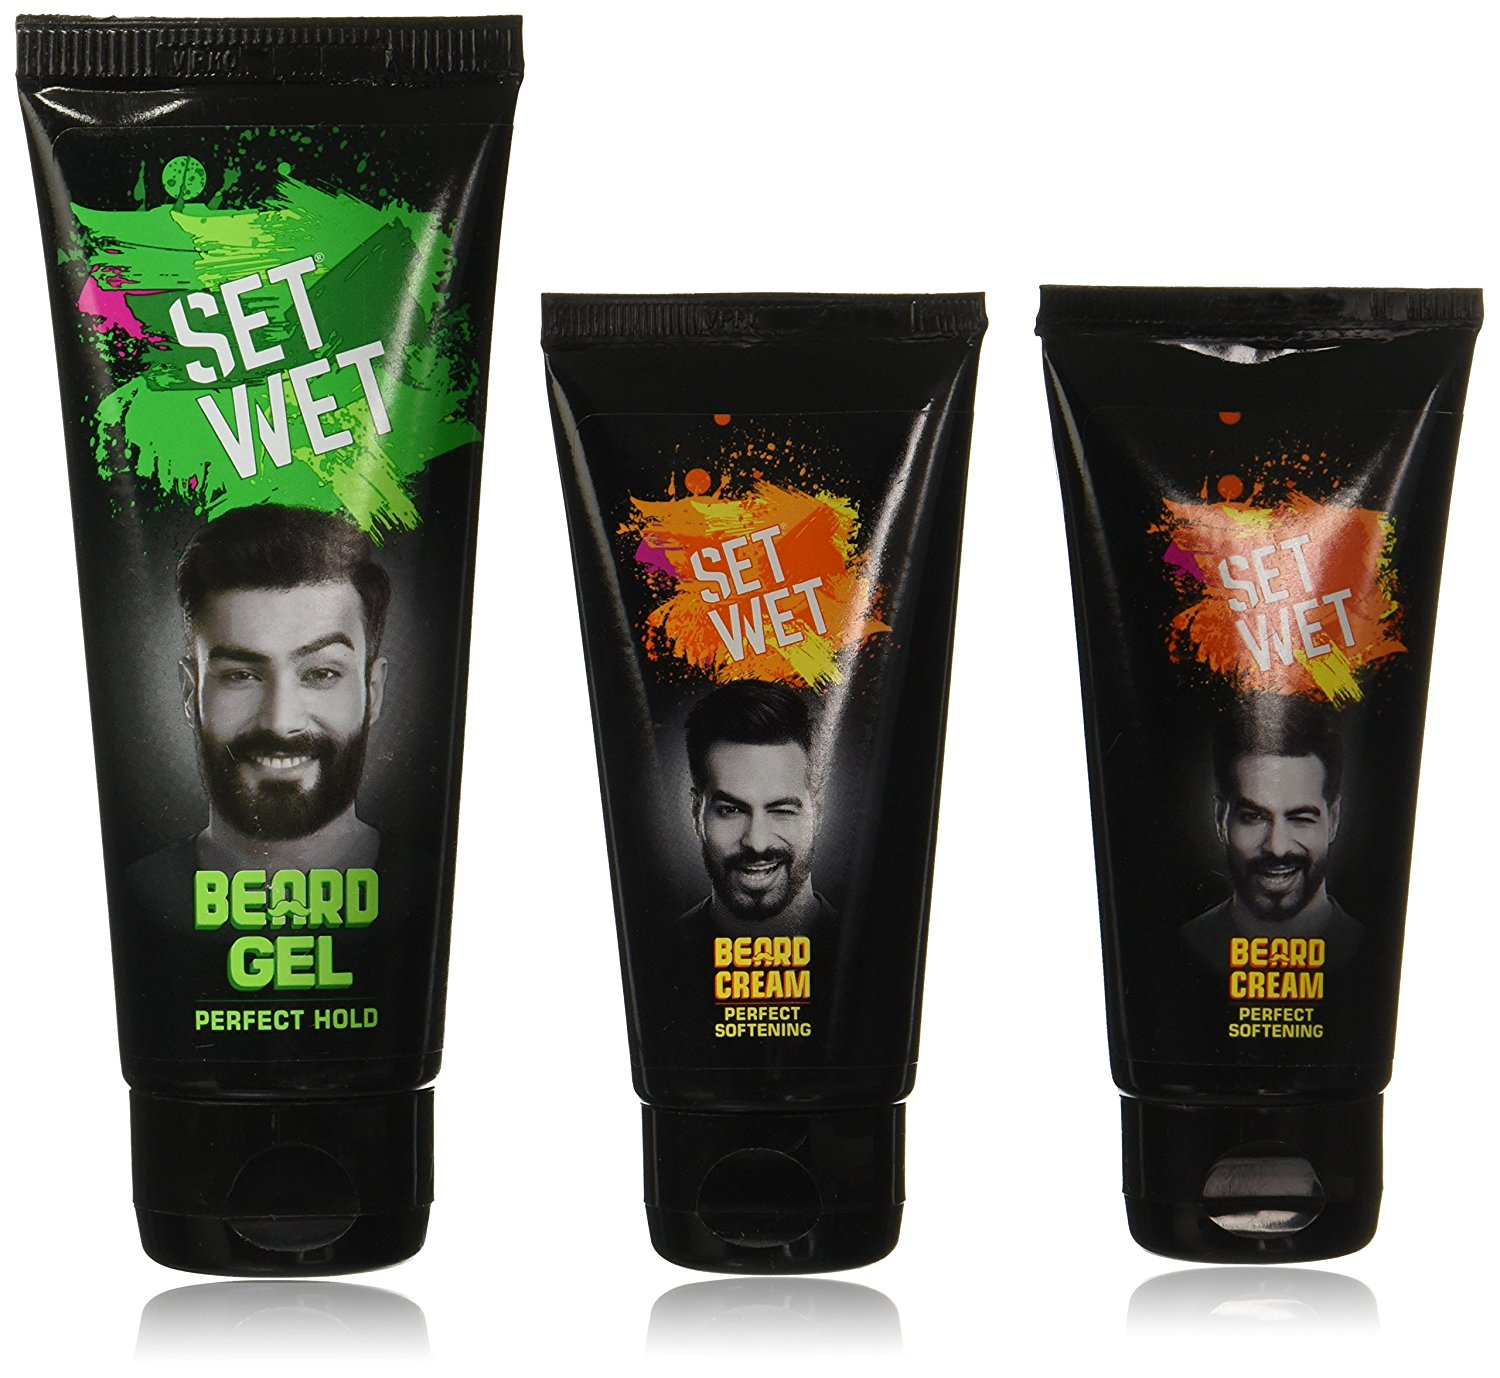 Set Wet Beard Styling Cream, 50ml (Pack of 2) with Set Wet Beard Styling Gel, 100ml